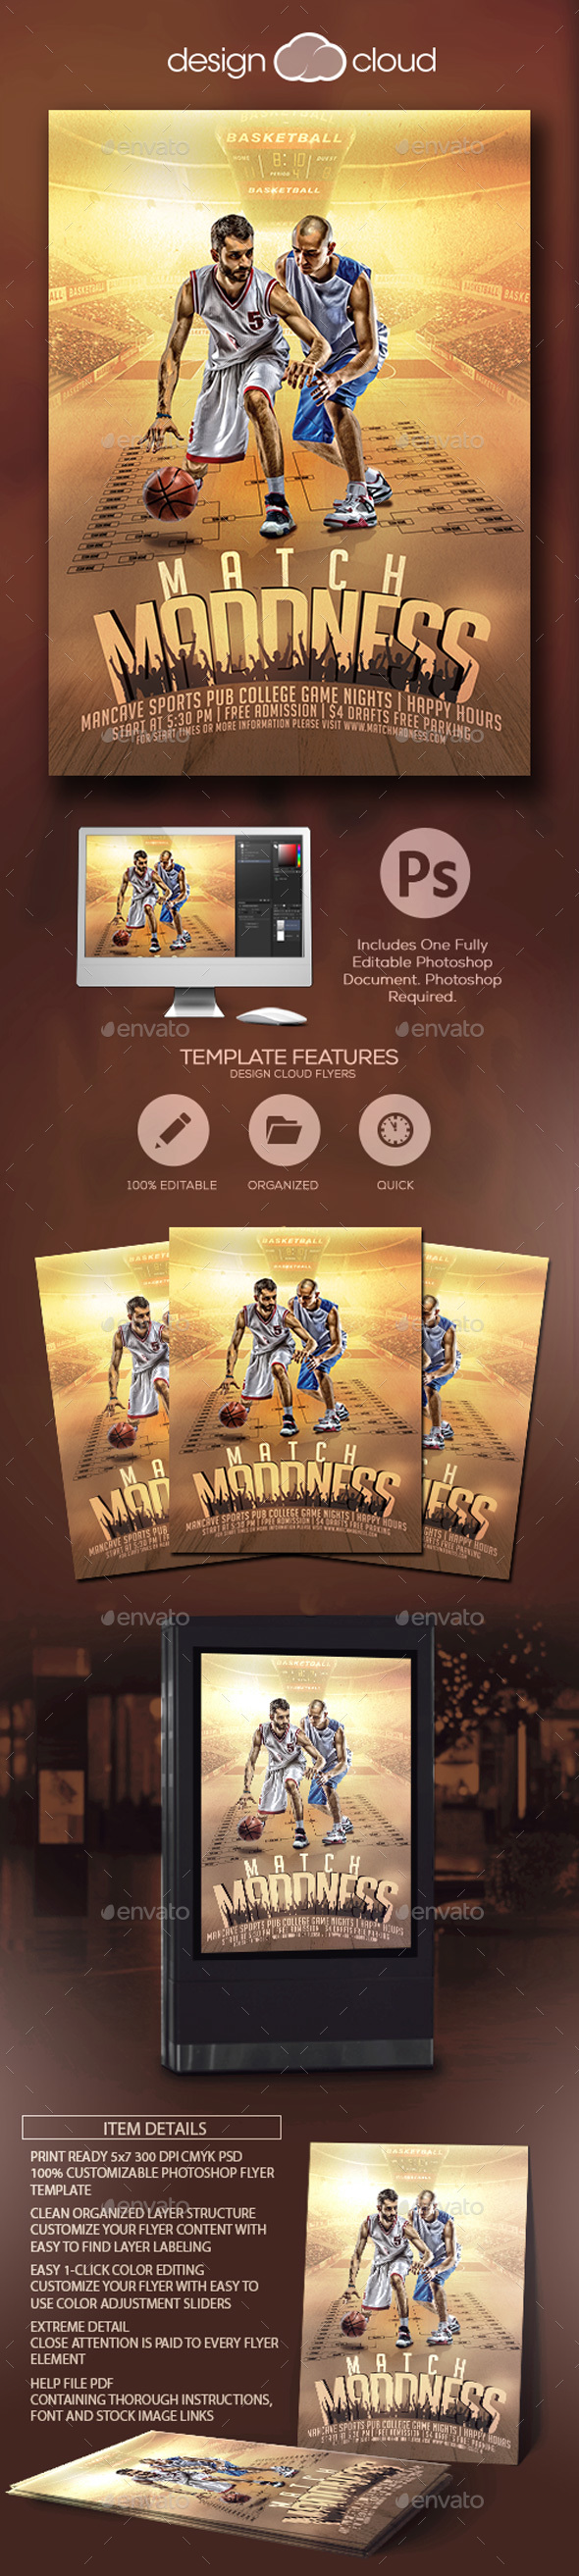 Match Madness Basketball Flyer Template - Sports Events